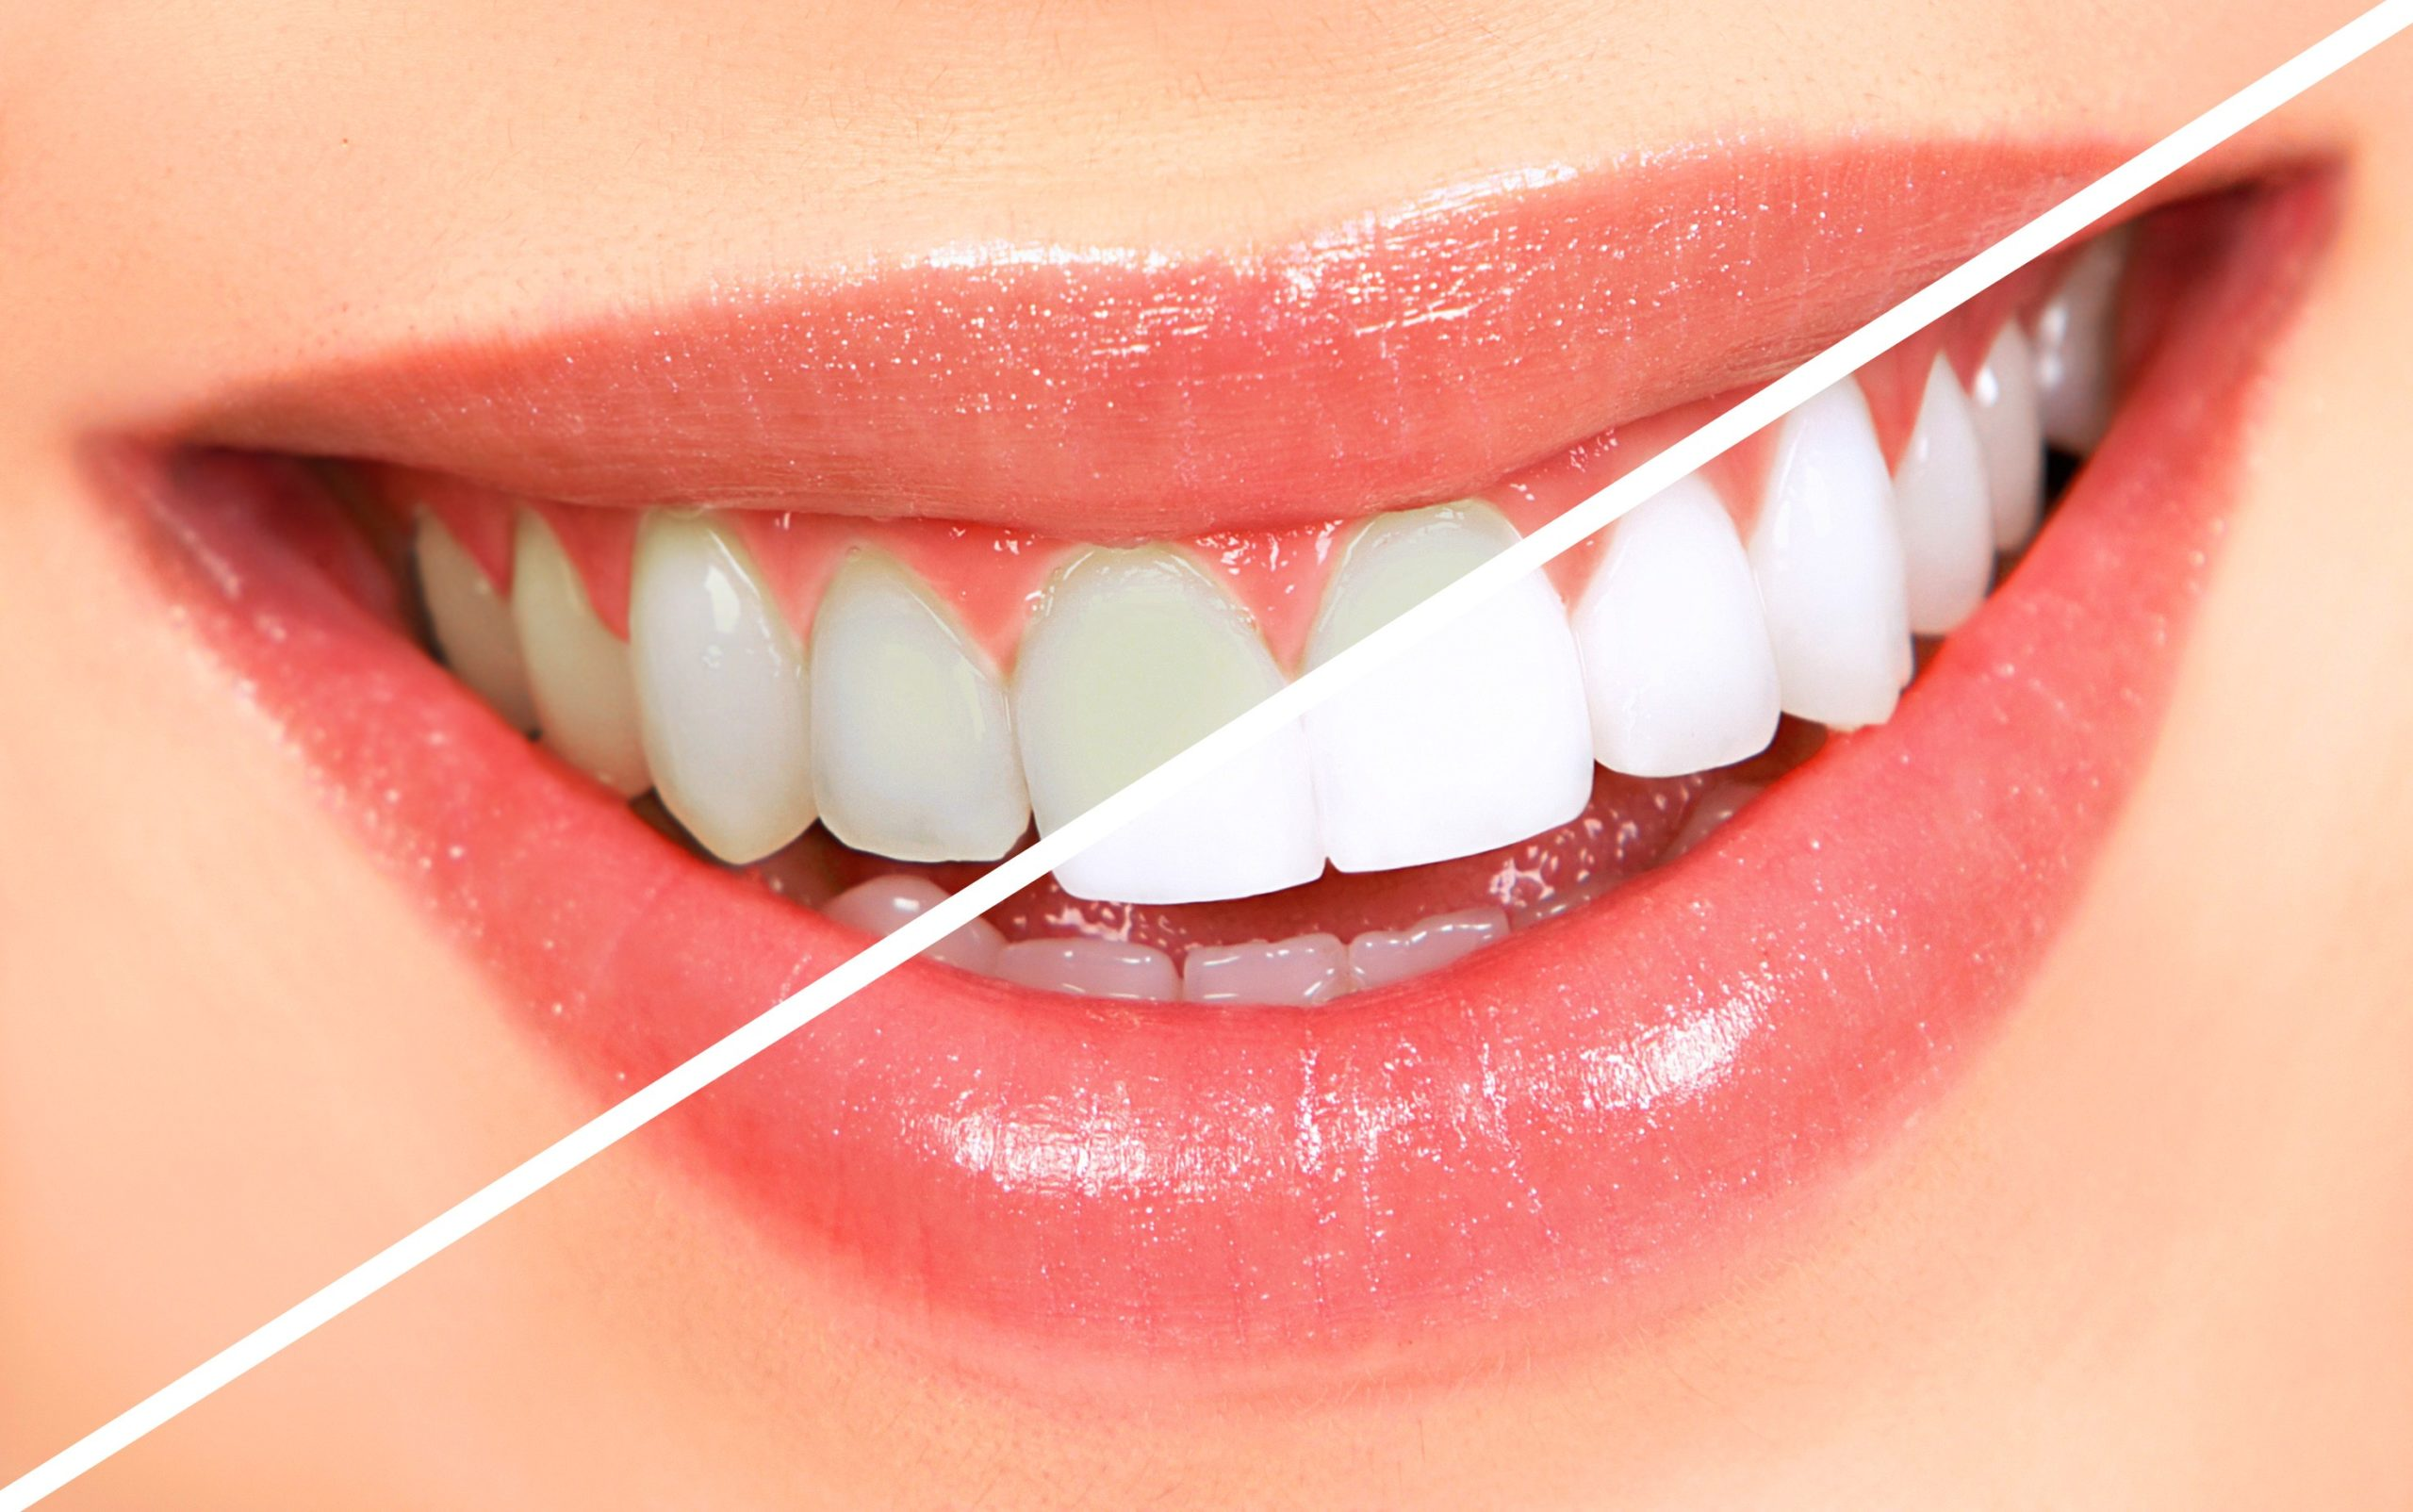 Essential Facts You Should Know Before Opting for Teeth Whitening